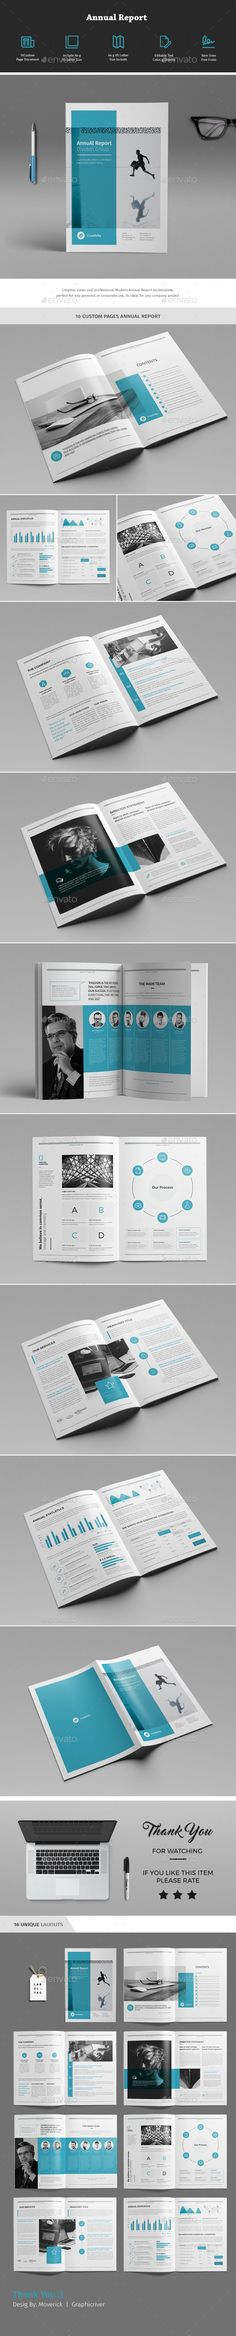 Annual Report - Corporate Brochures Download here: https://graphicriver.net/item/annual-report/19967312?https://graphicriver.net/item/annual-report/19972188?ref=classicdesignp